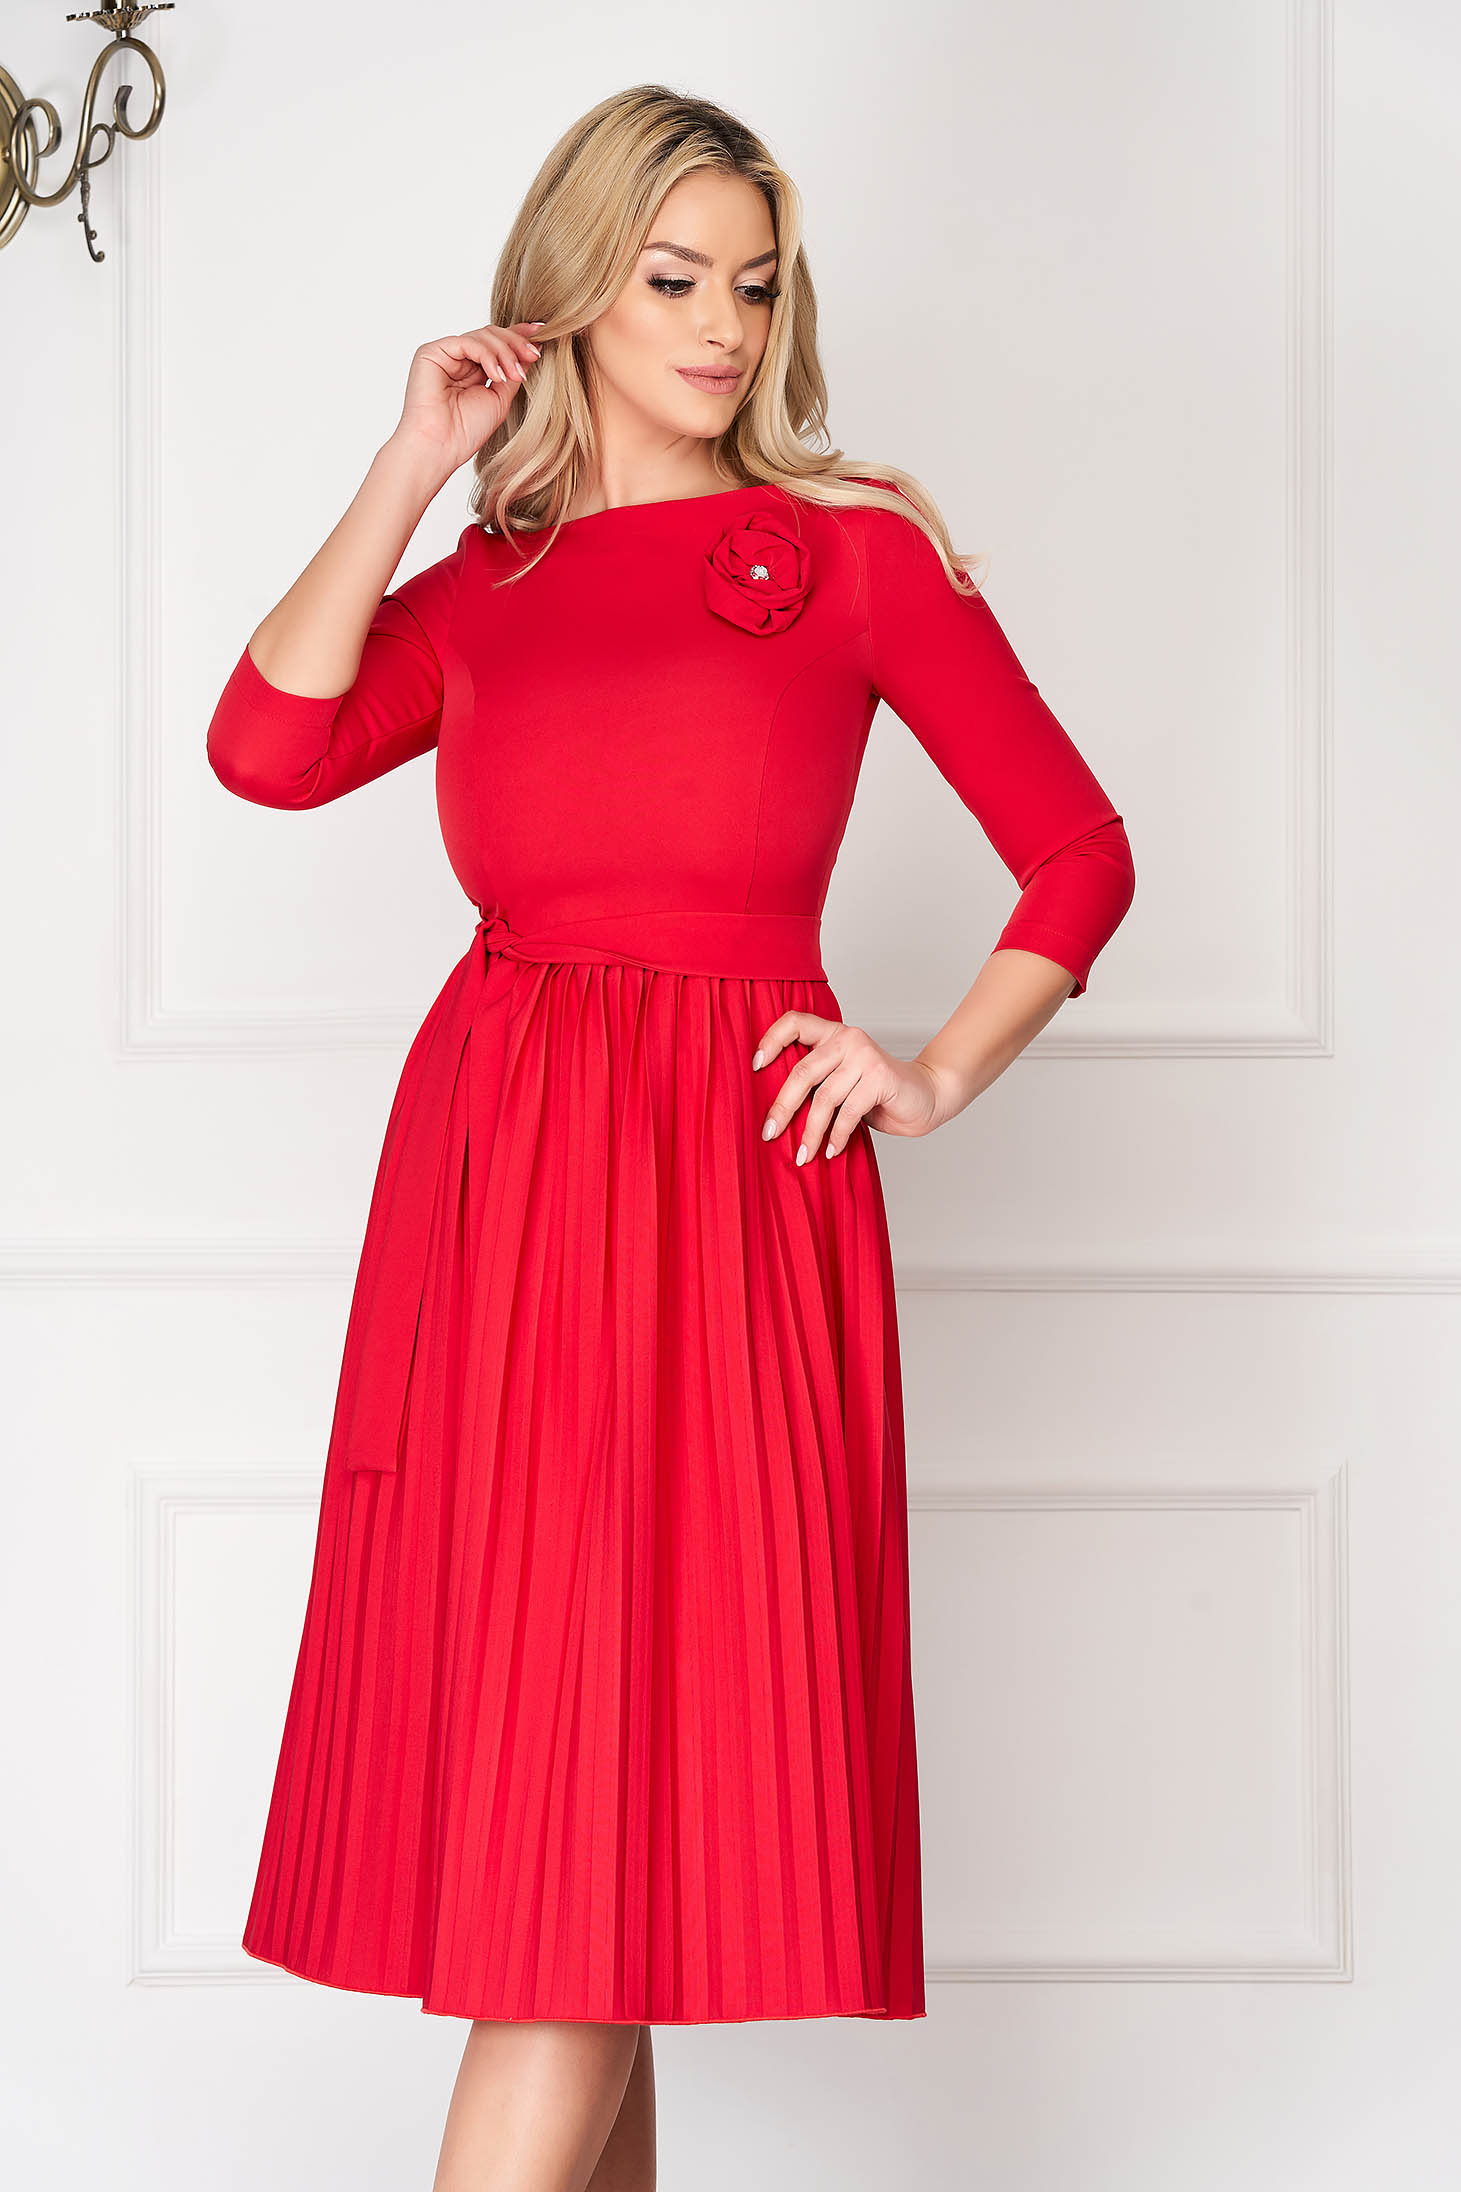 Dress StarShinerS red elegant midi cloche cloth folded up accessorized with tied waistband